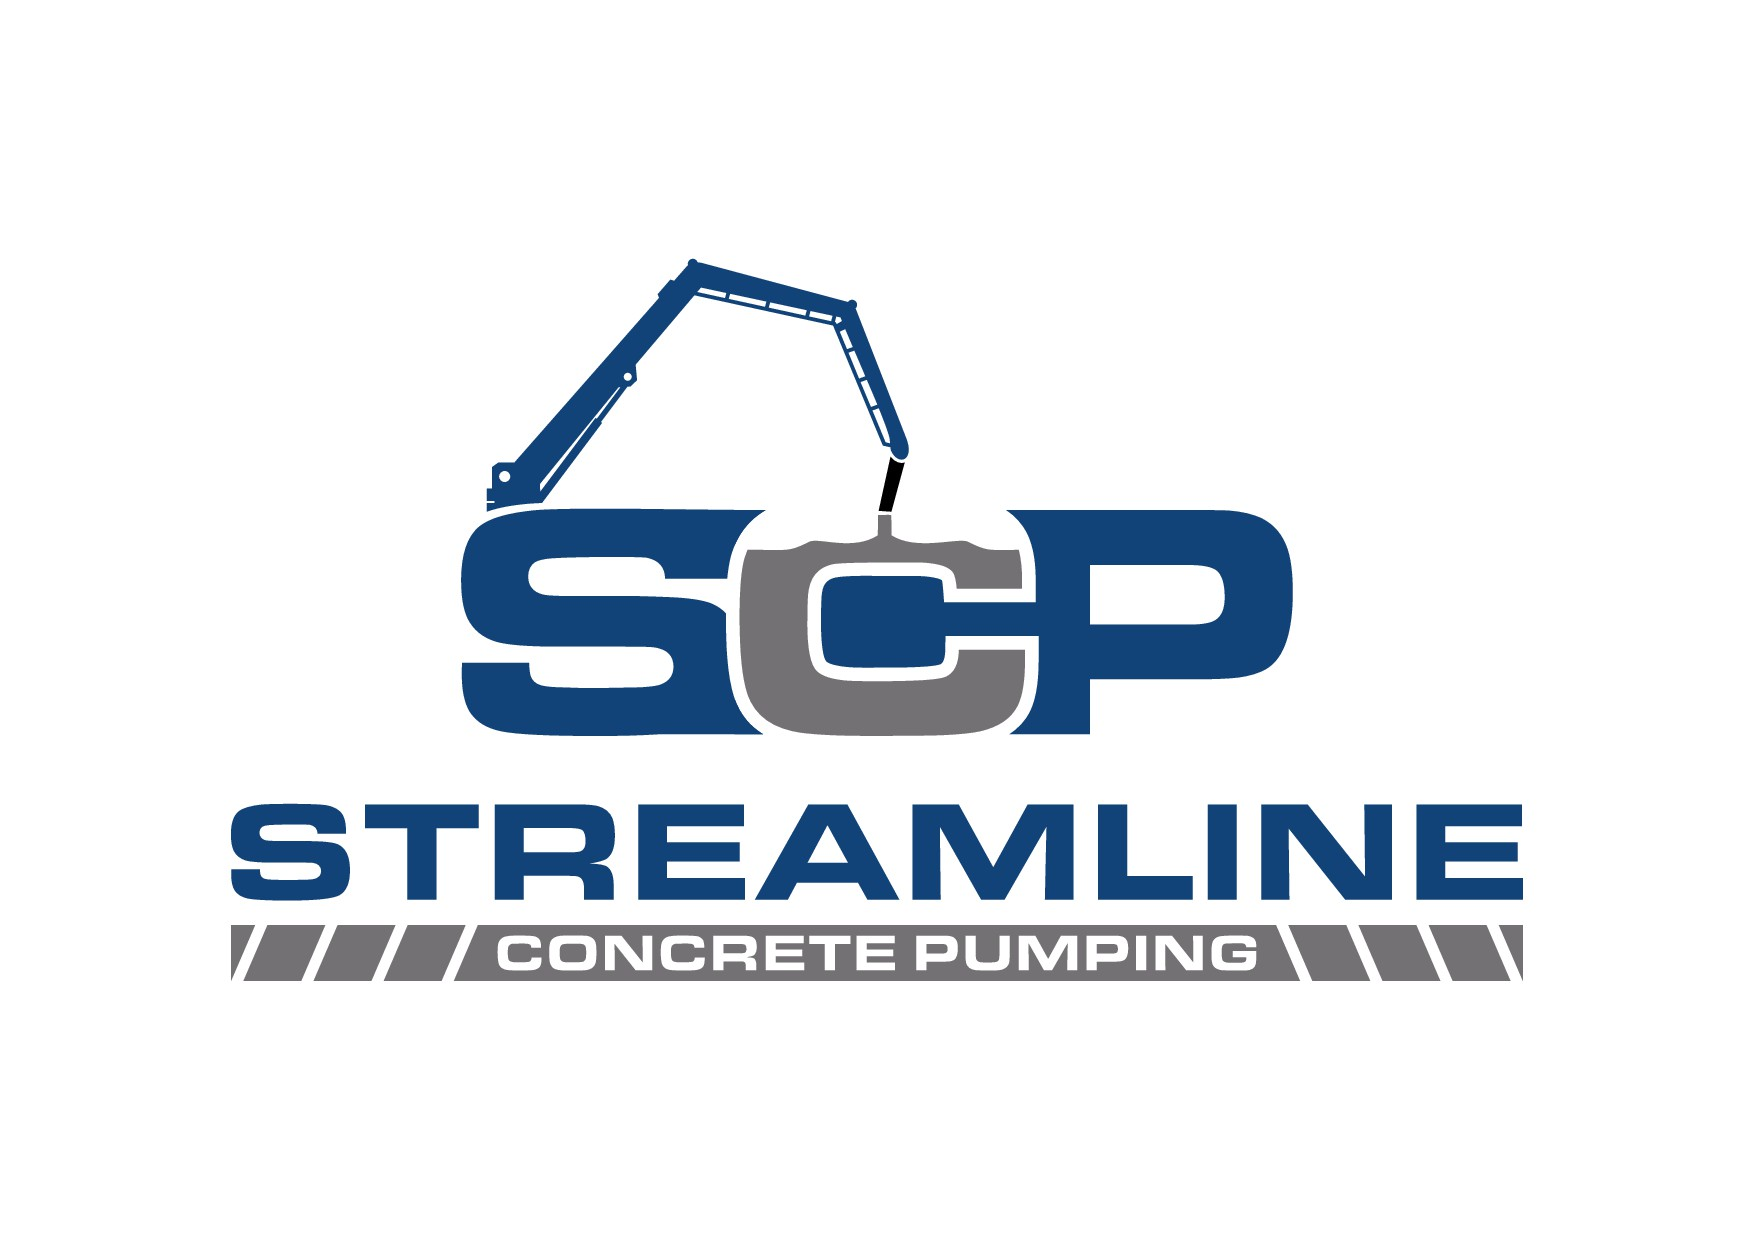 Concrete pump company appeal to builders and contractors